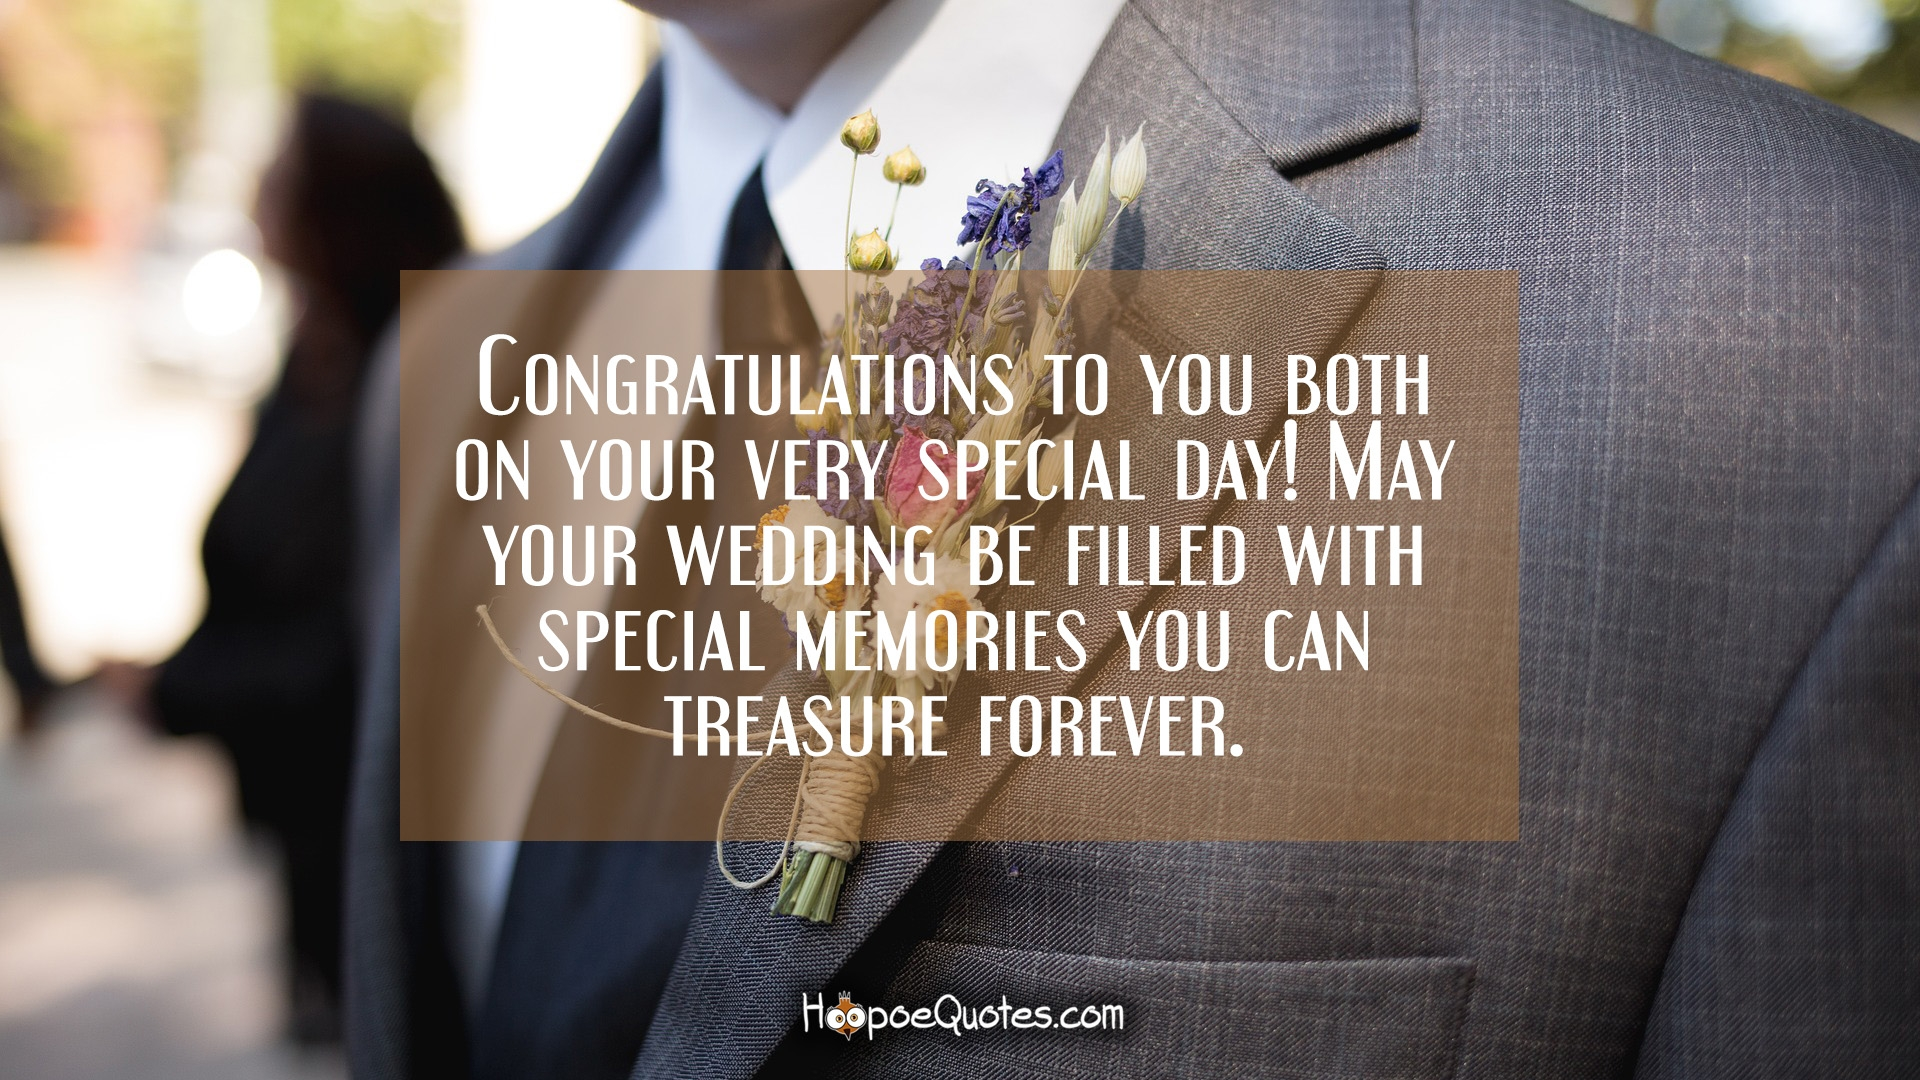 Congratulations To You Both On Your Very Special Day May Your Wedding Be Filled With Special Memories You Can Treasure Forever Hoopoequotes